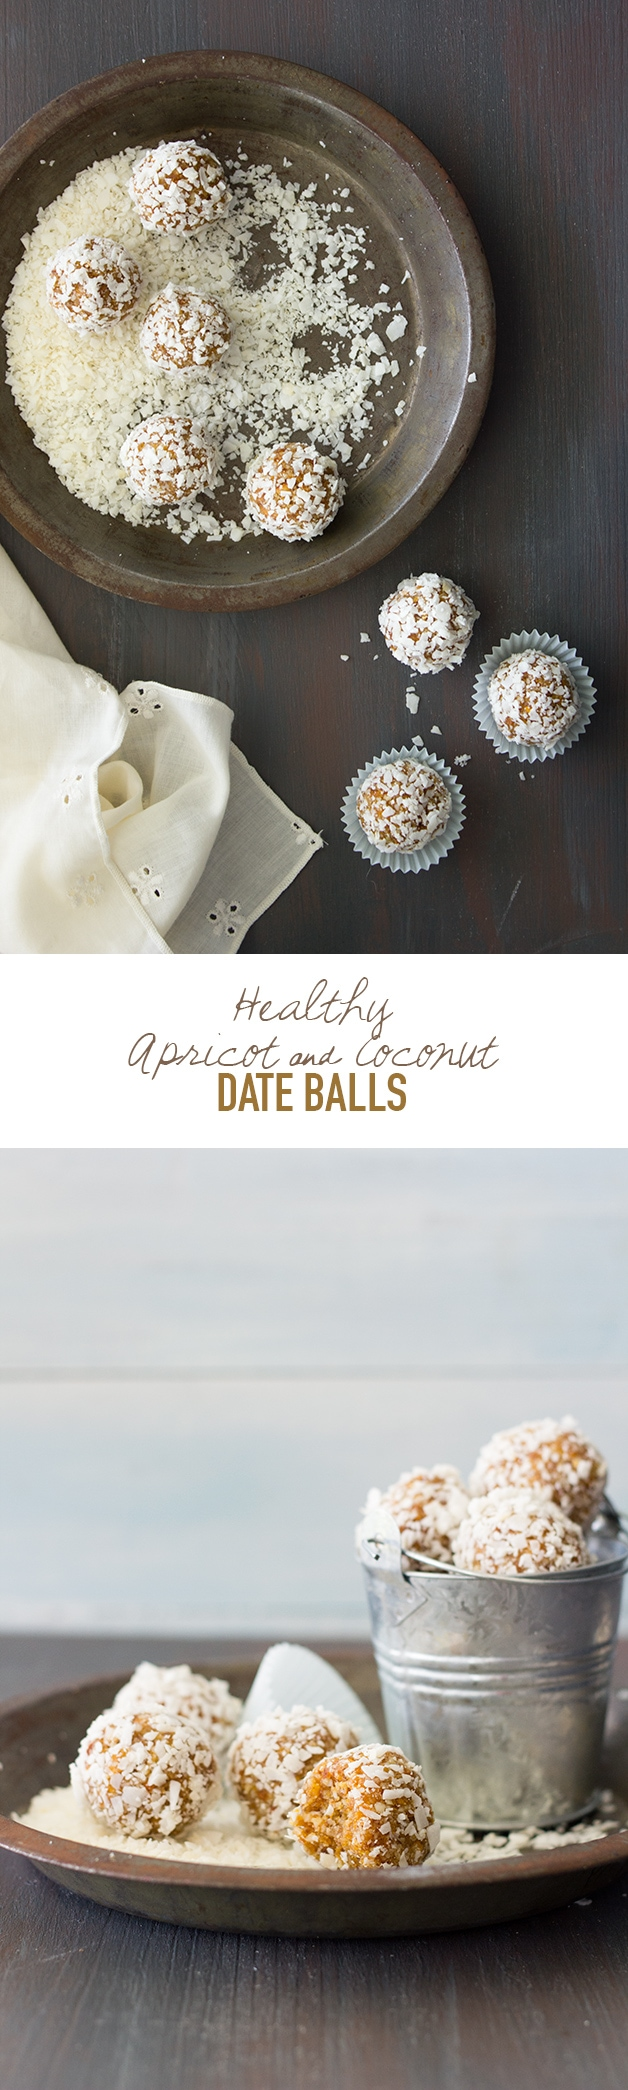 Healthy Apricot & Coconut Date Balls - a recipe for natural-sweetened energy bites to curb those random snacking cravings. {Gluten-Free, Vegan}   www.brighteyedbaker.com